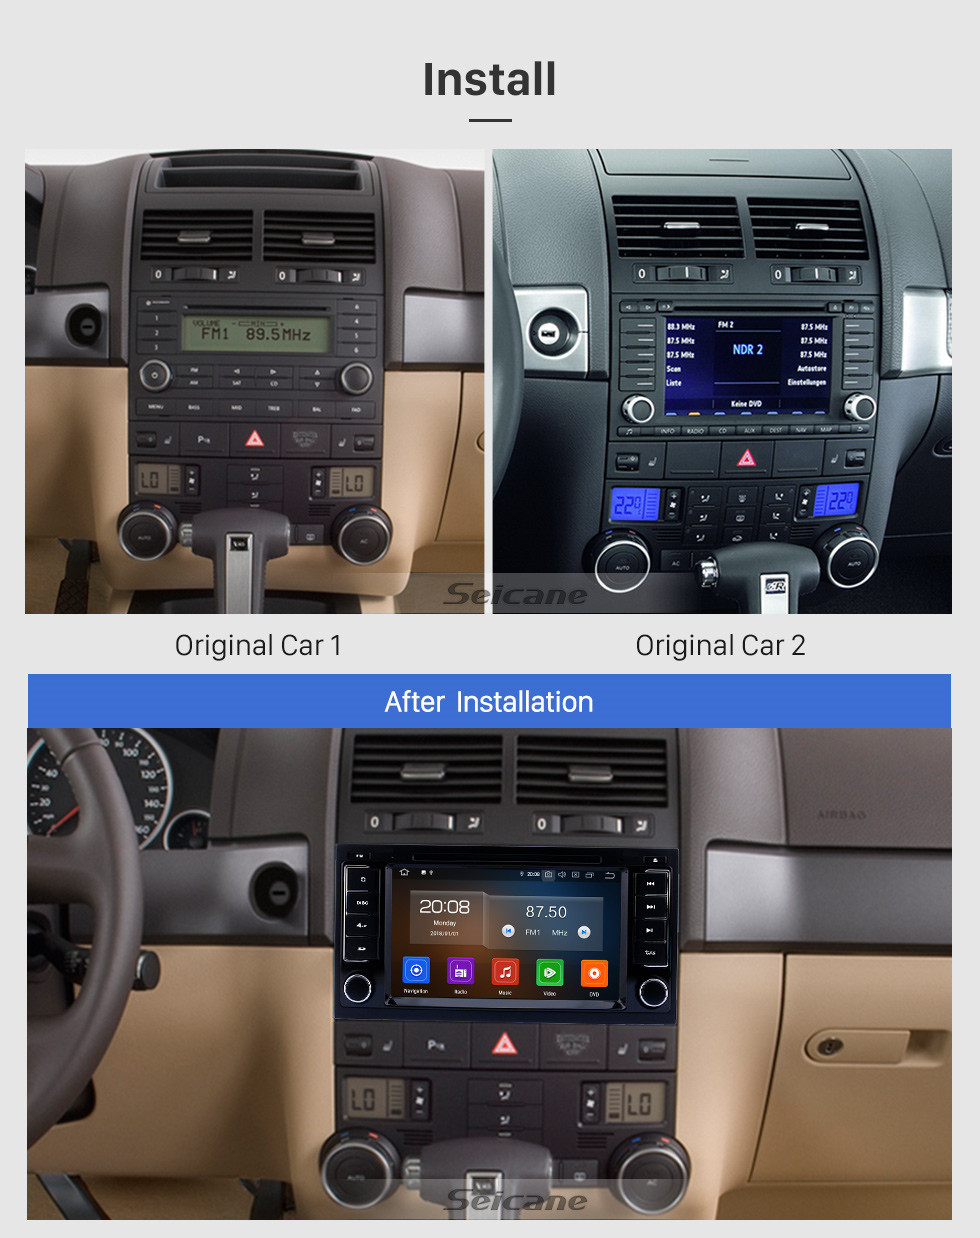 Seicane Android 10.0 CD Radio In Dash Car GPS Stereo for 2003-2014 VW Volkswagen T5 Multivan with 3G WiFi DVD Player Bluetooth Mirror Link OBD2 Steering Wheel Control AUX